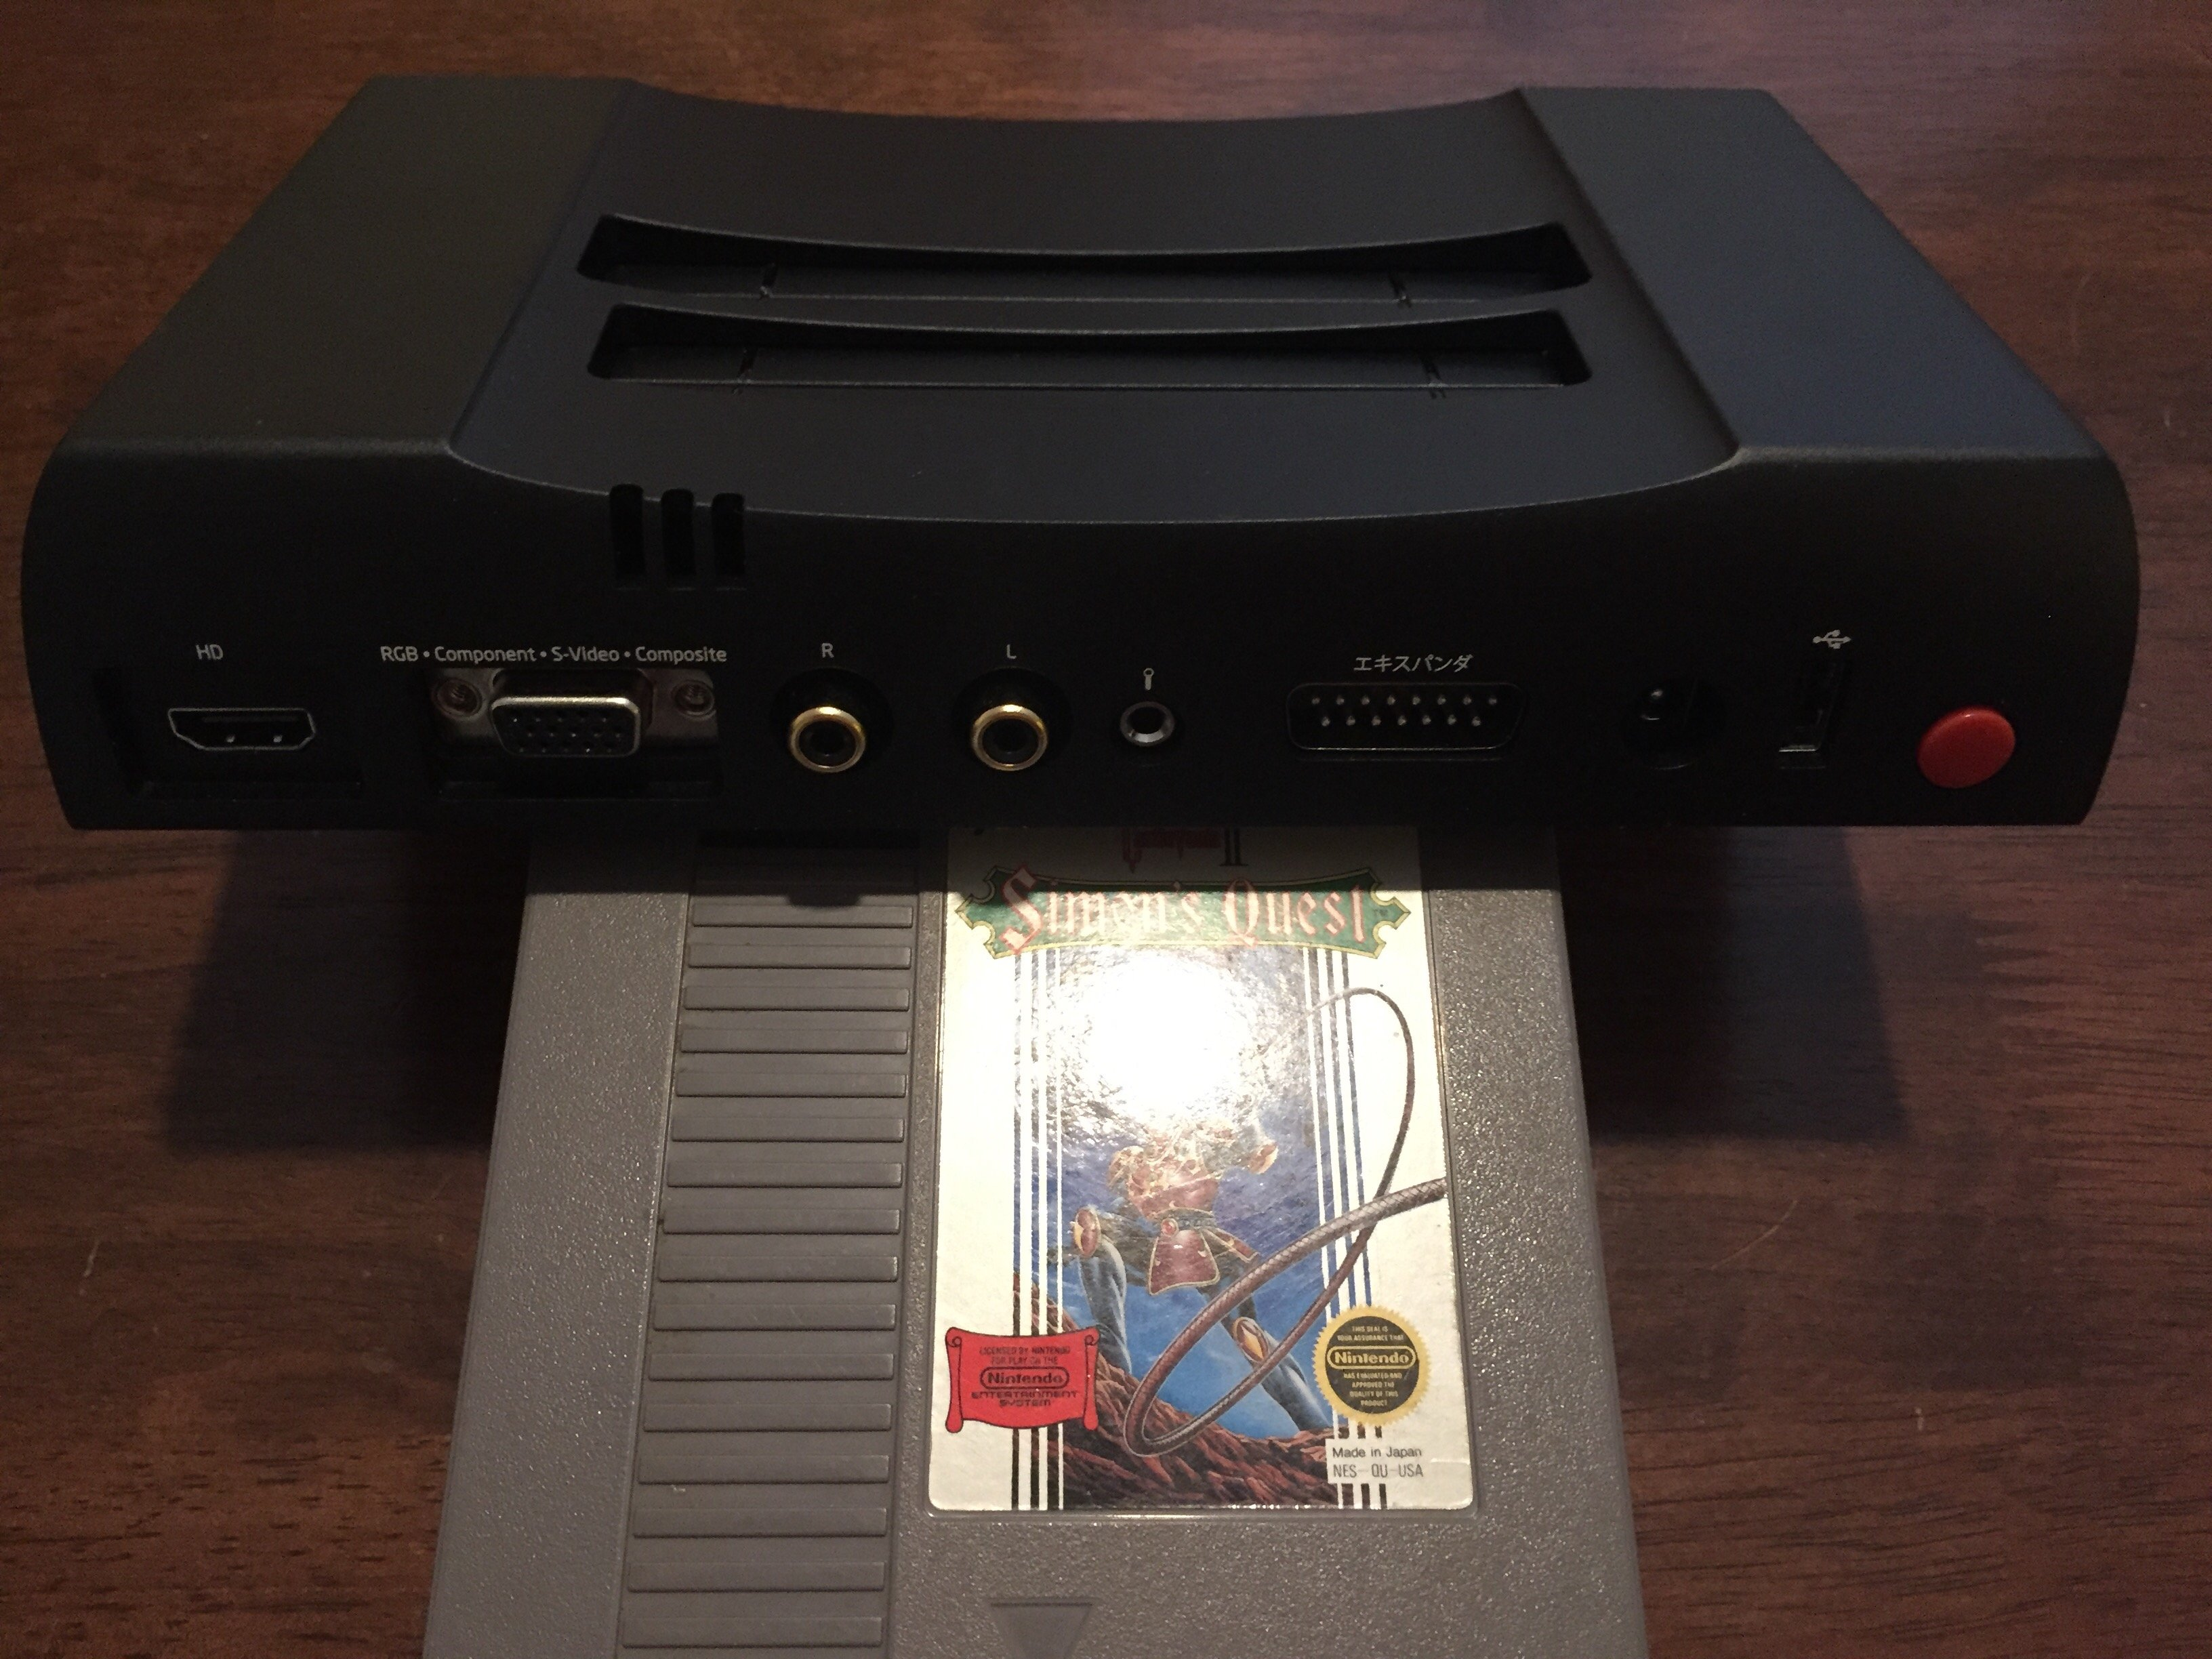 Analogue Nt mini review